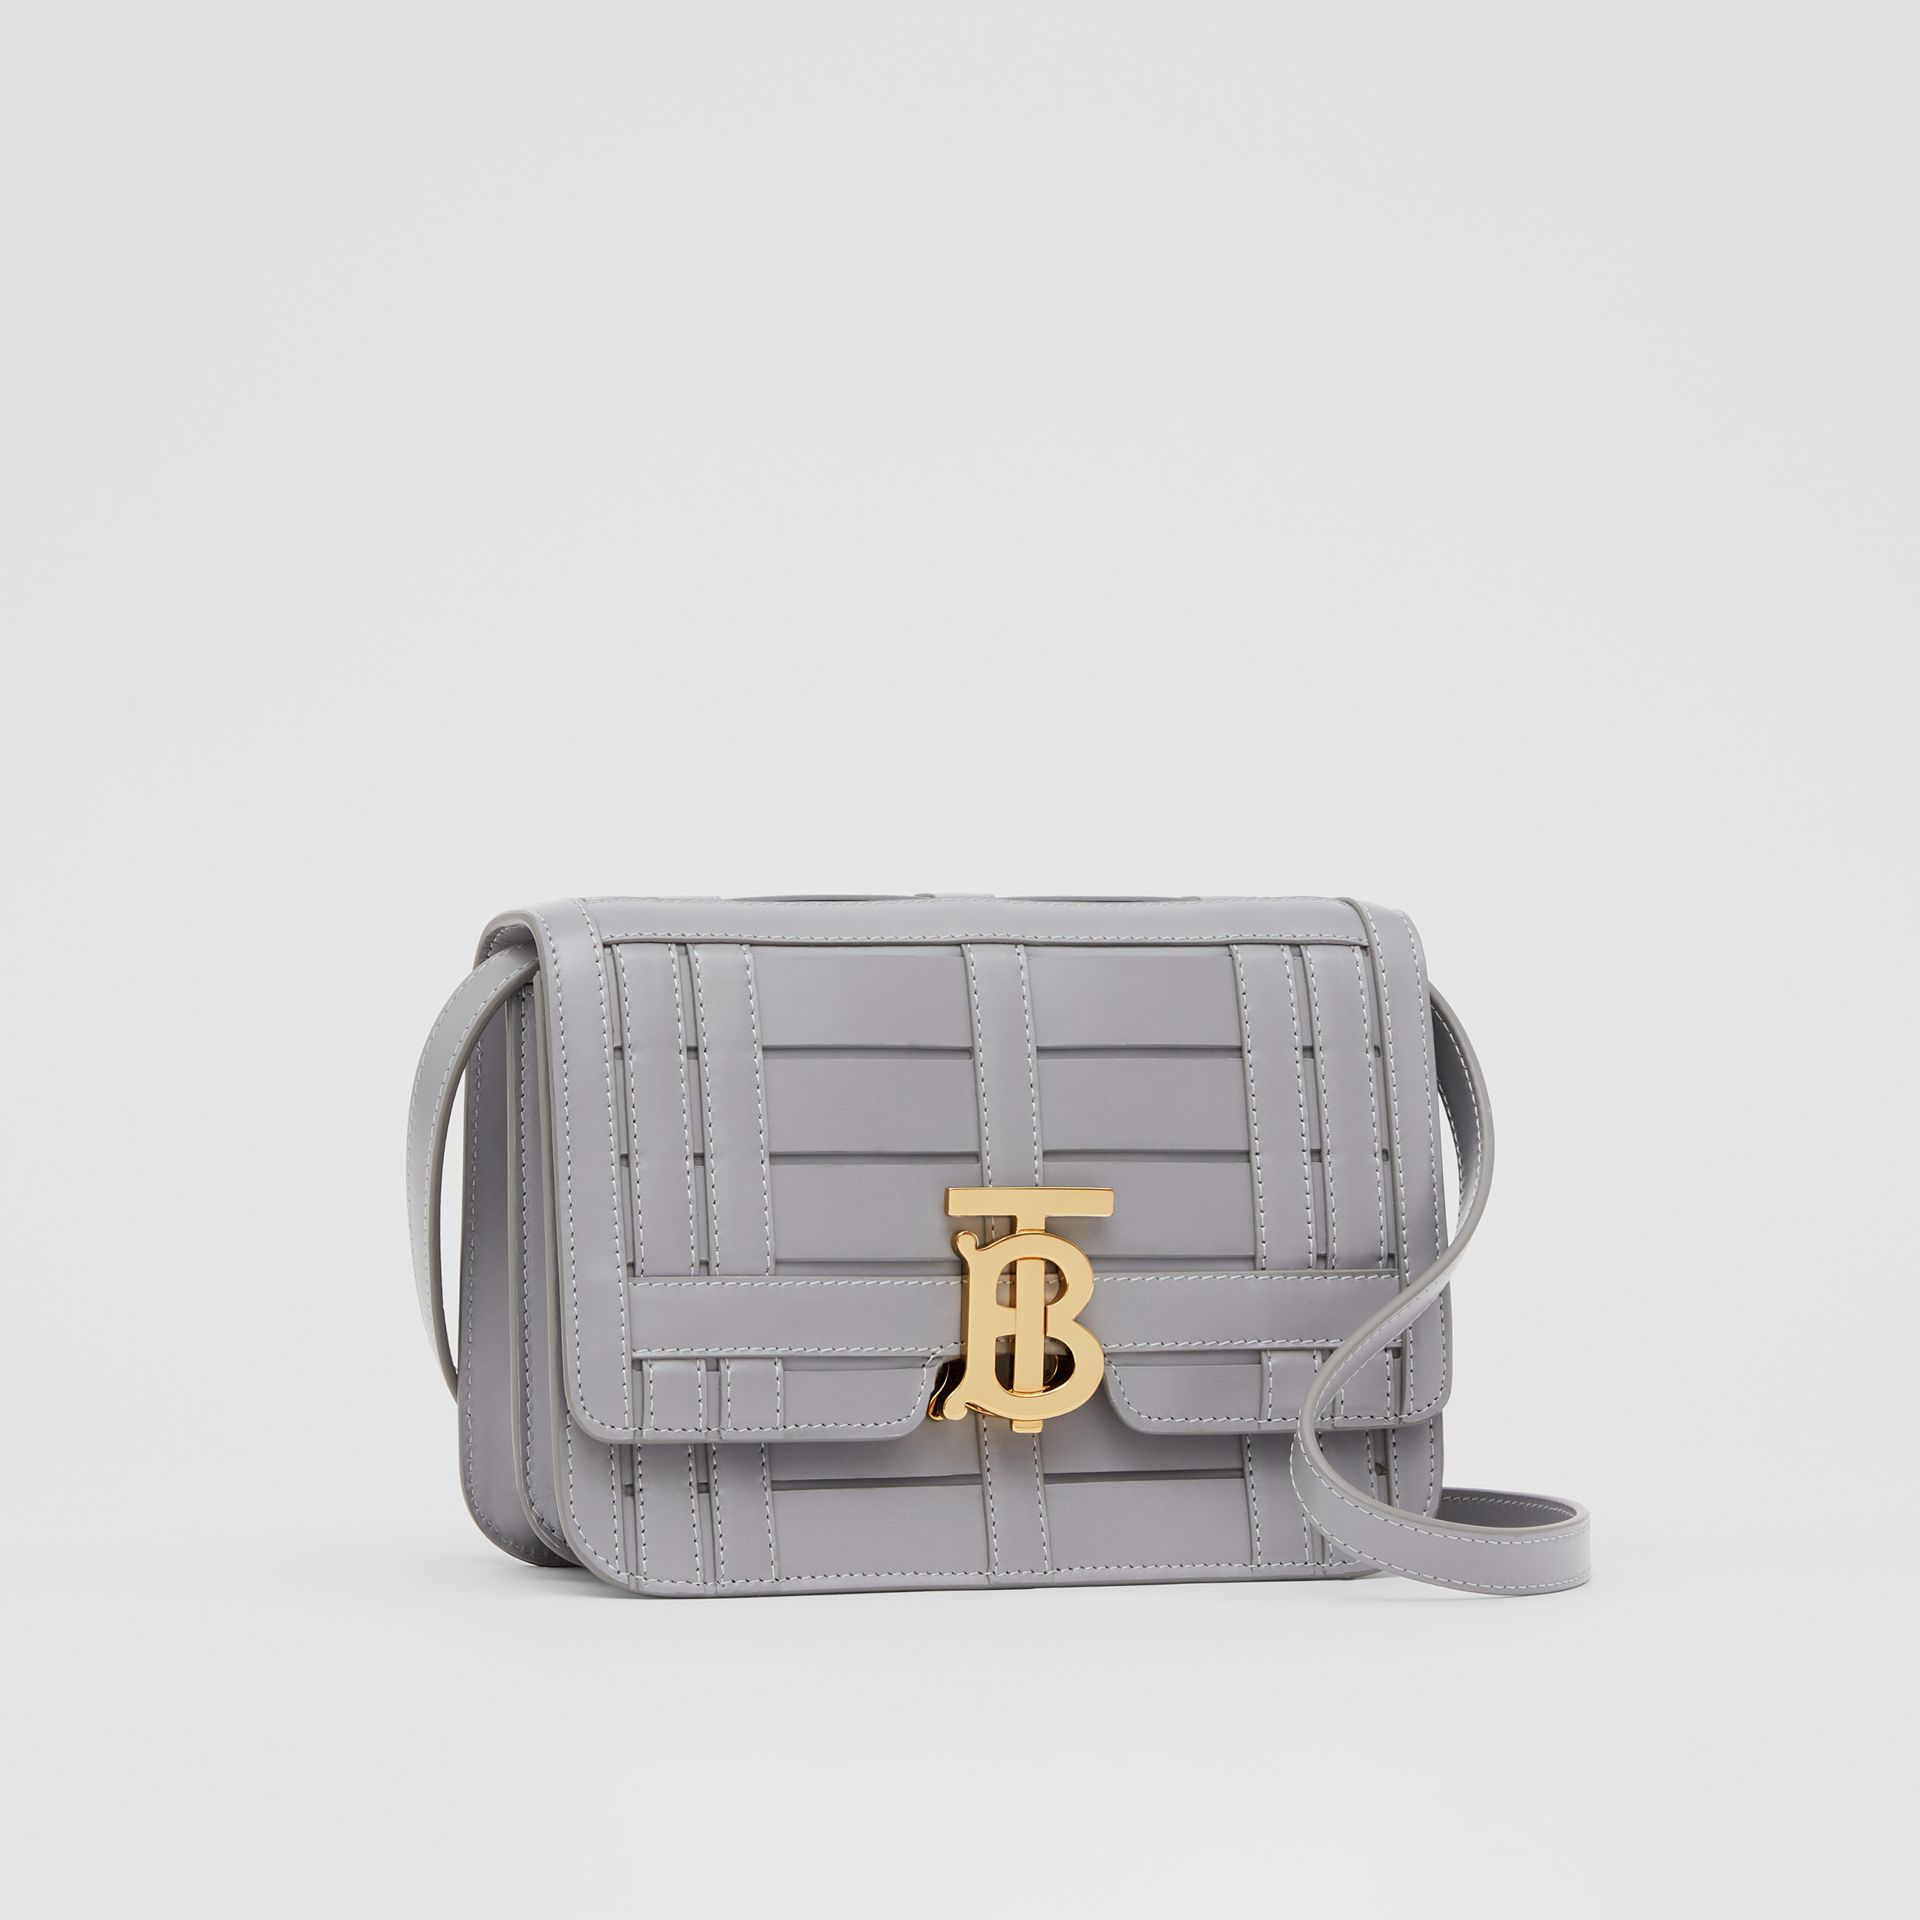 Small Woven Leather TB Bag in Cloud Grey - Women | Burberry United Kingdom - gallery image 6